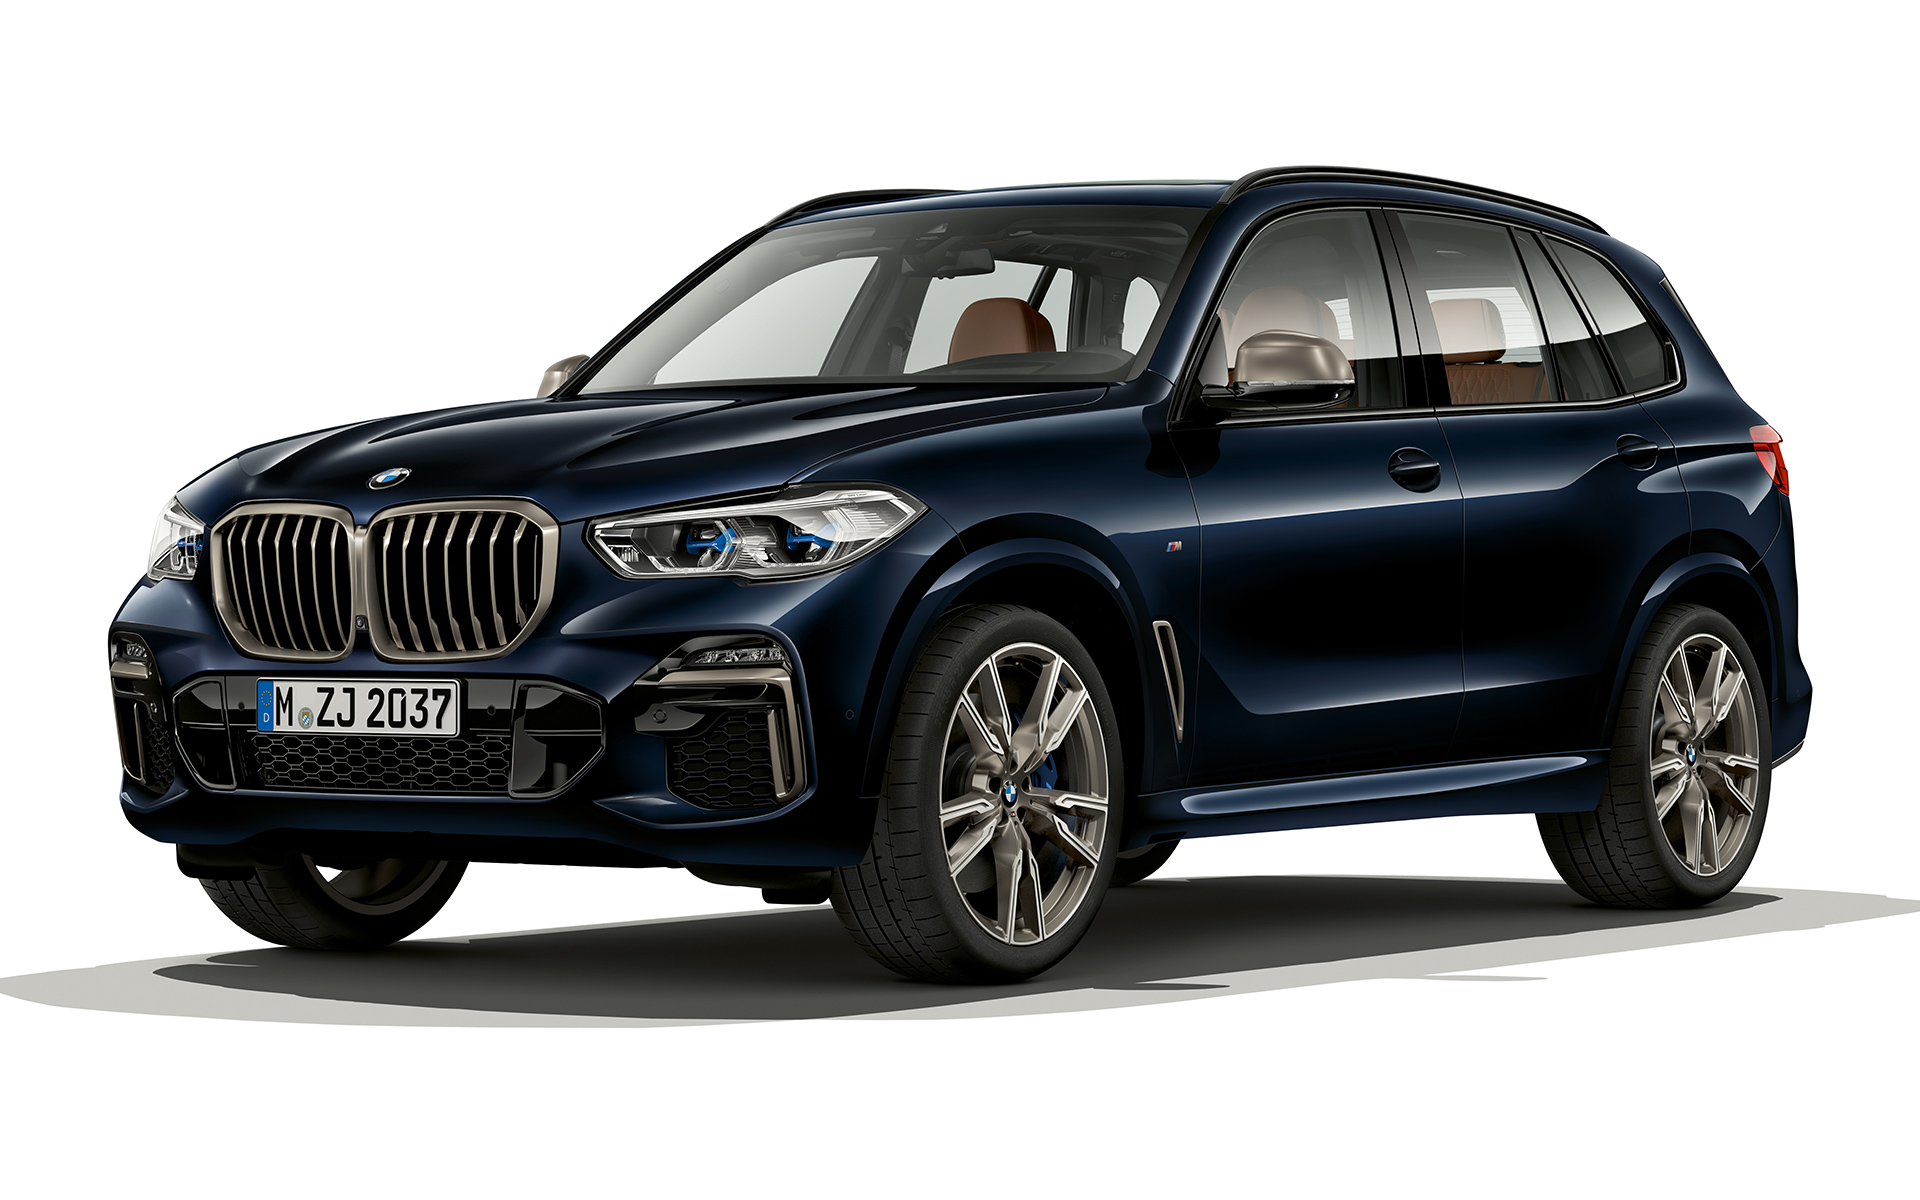 nuova bmw x5 m50d auto sportiva x5 m performance. Black Bedroom Furniture Sets. Home Design Ideas